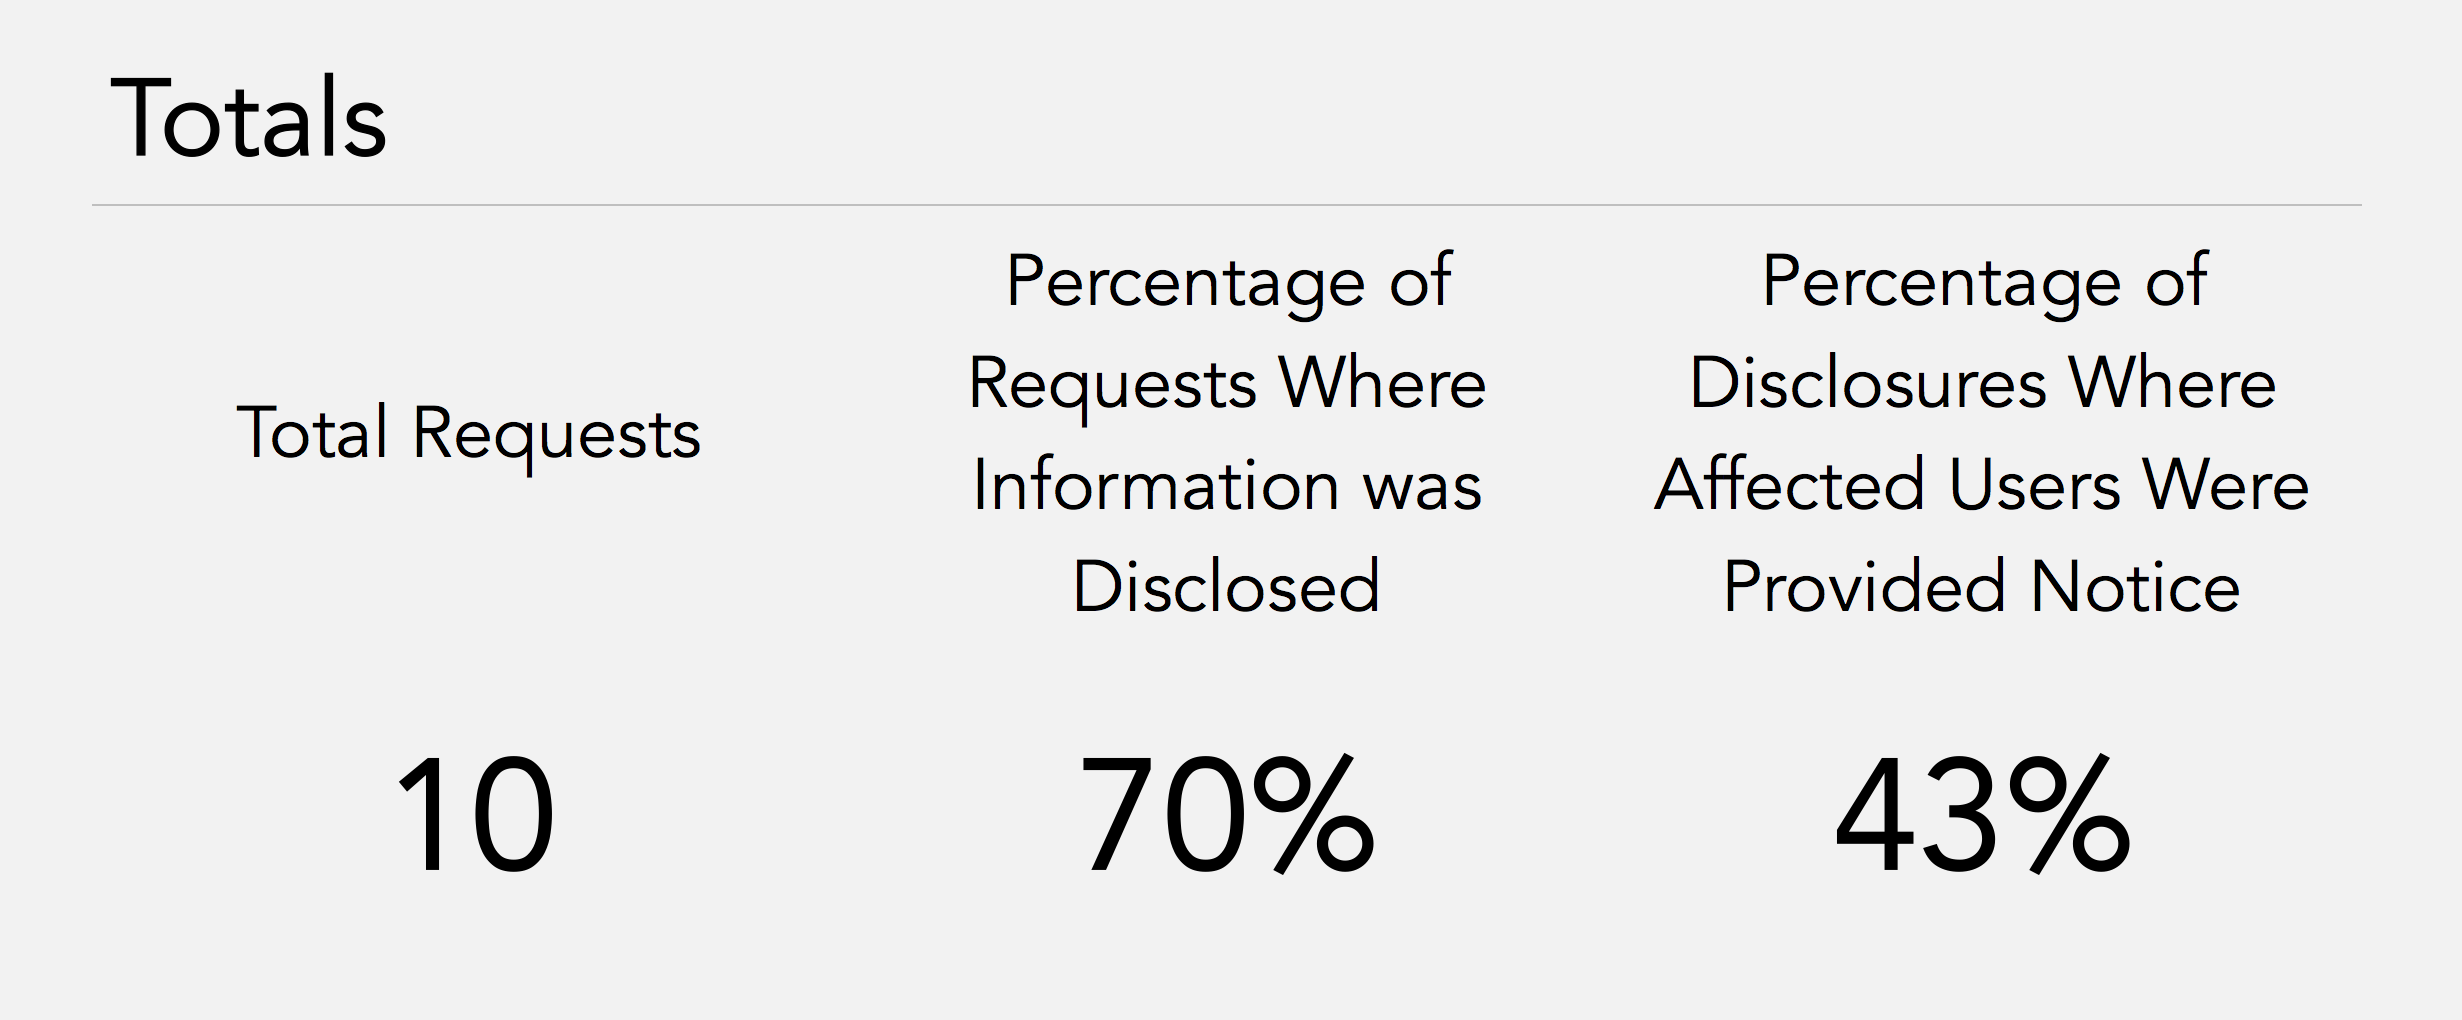 Information Request Totals.   Total Requests: 10.   Percentage of Requests Where Information Was Disclosed: 70%.   Percentage of Disclosures Where Affected Users Were Provided Notice: 43%.